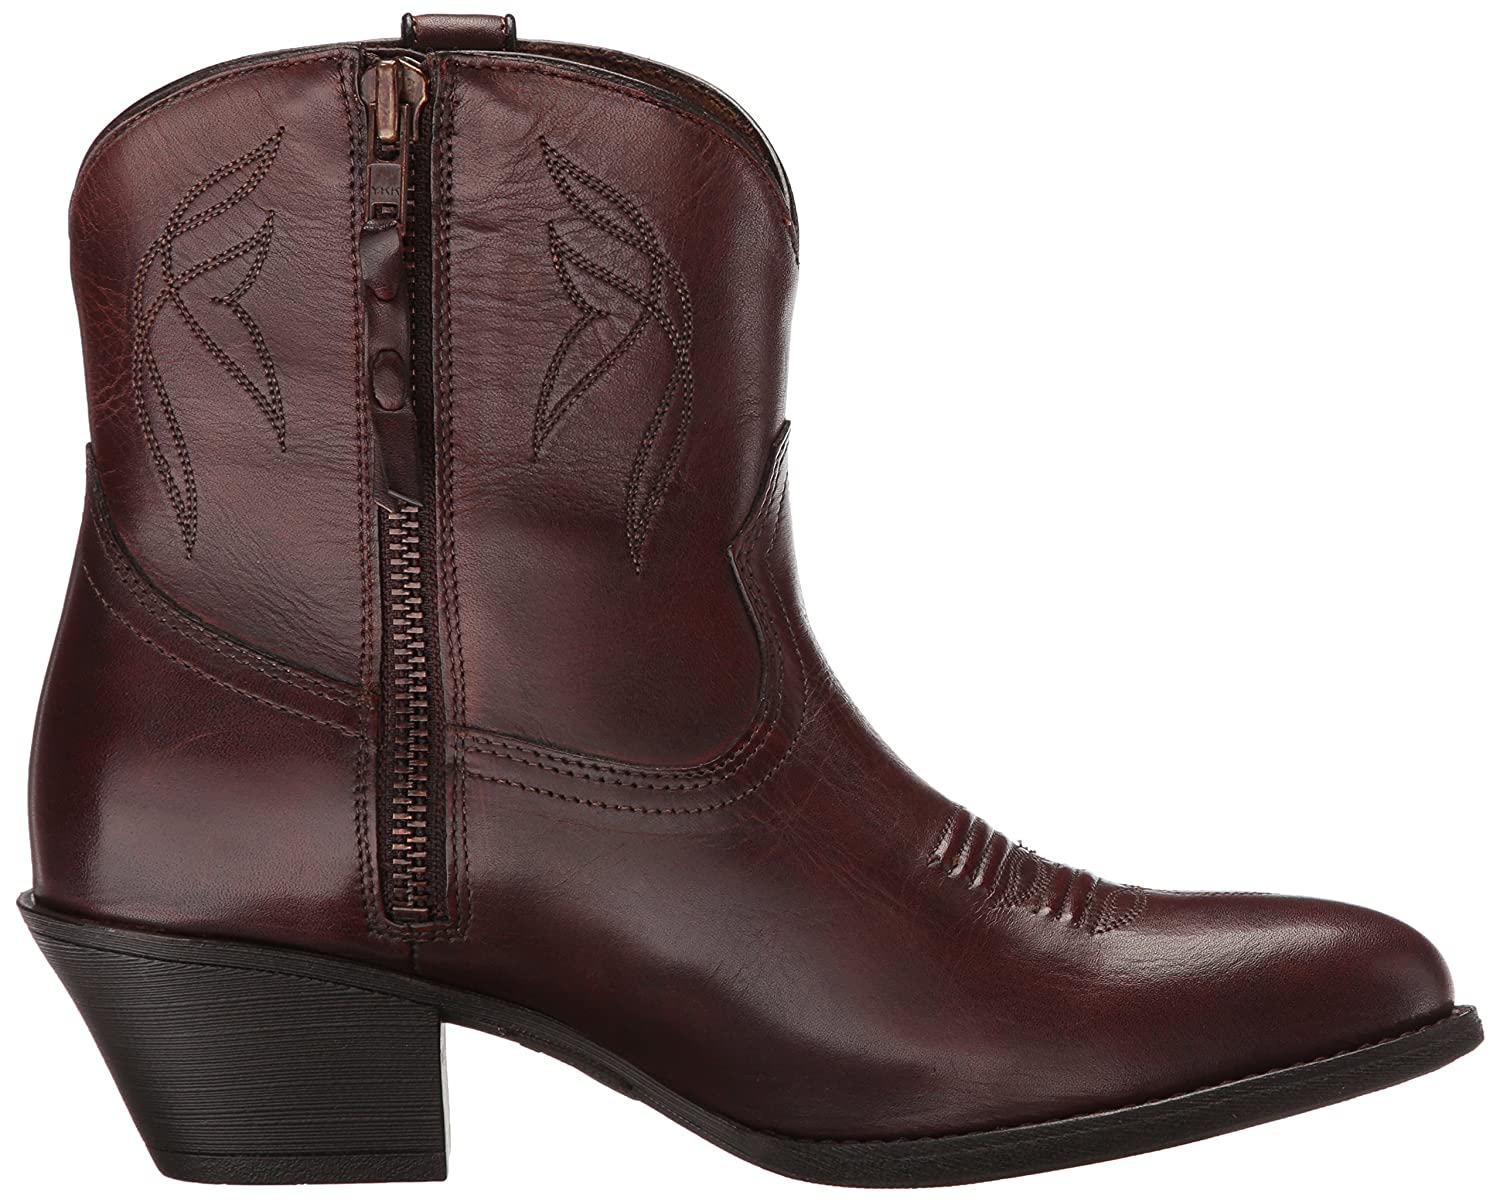 Ariat Women's Darlin Work US|Naturally Boot B01N27TYUQ 5.5 B(M) US|Naturally Work Dark Brown 088b13